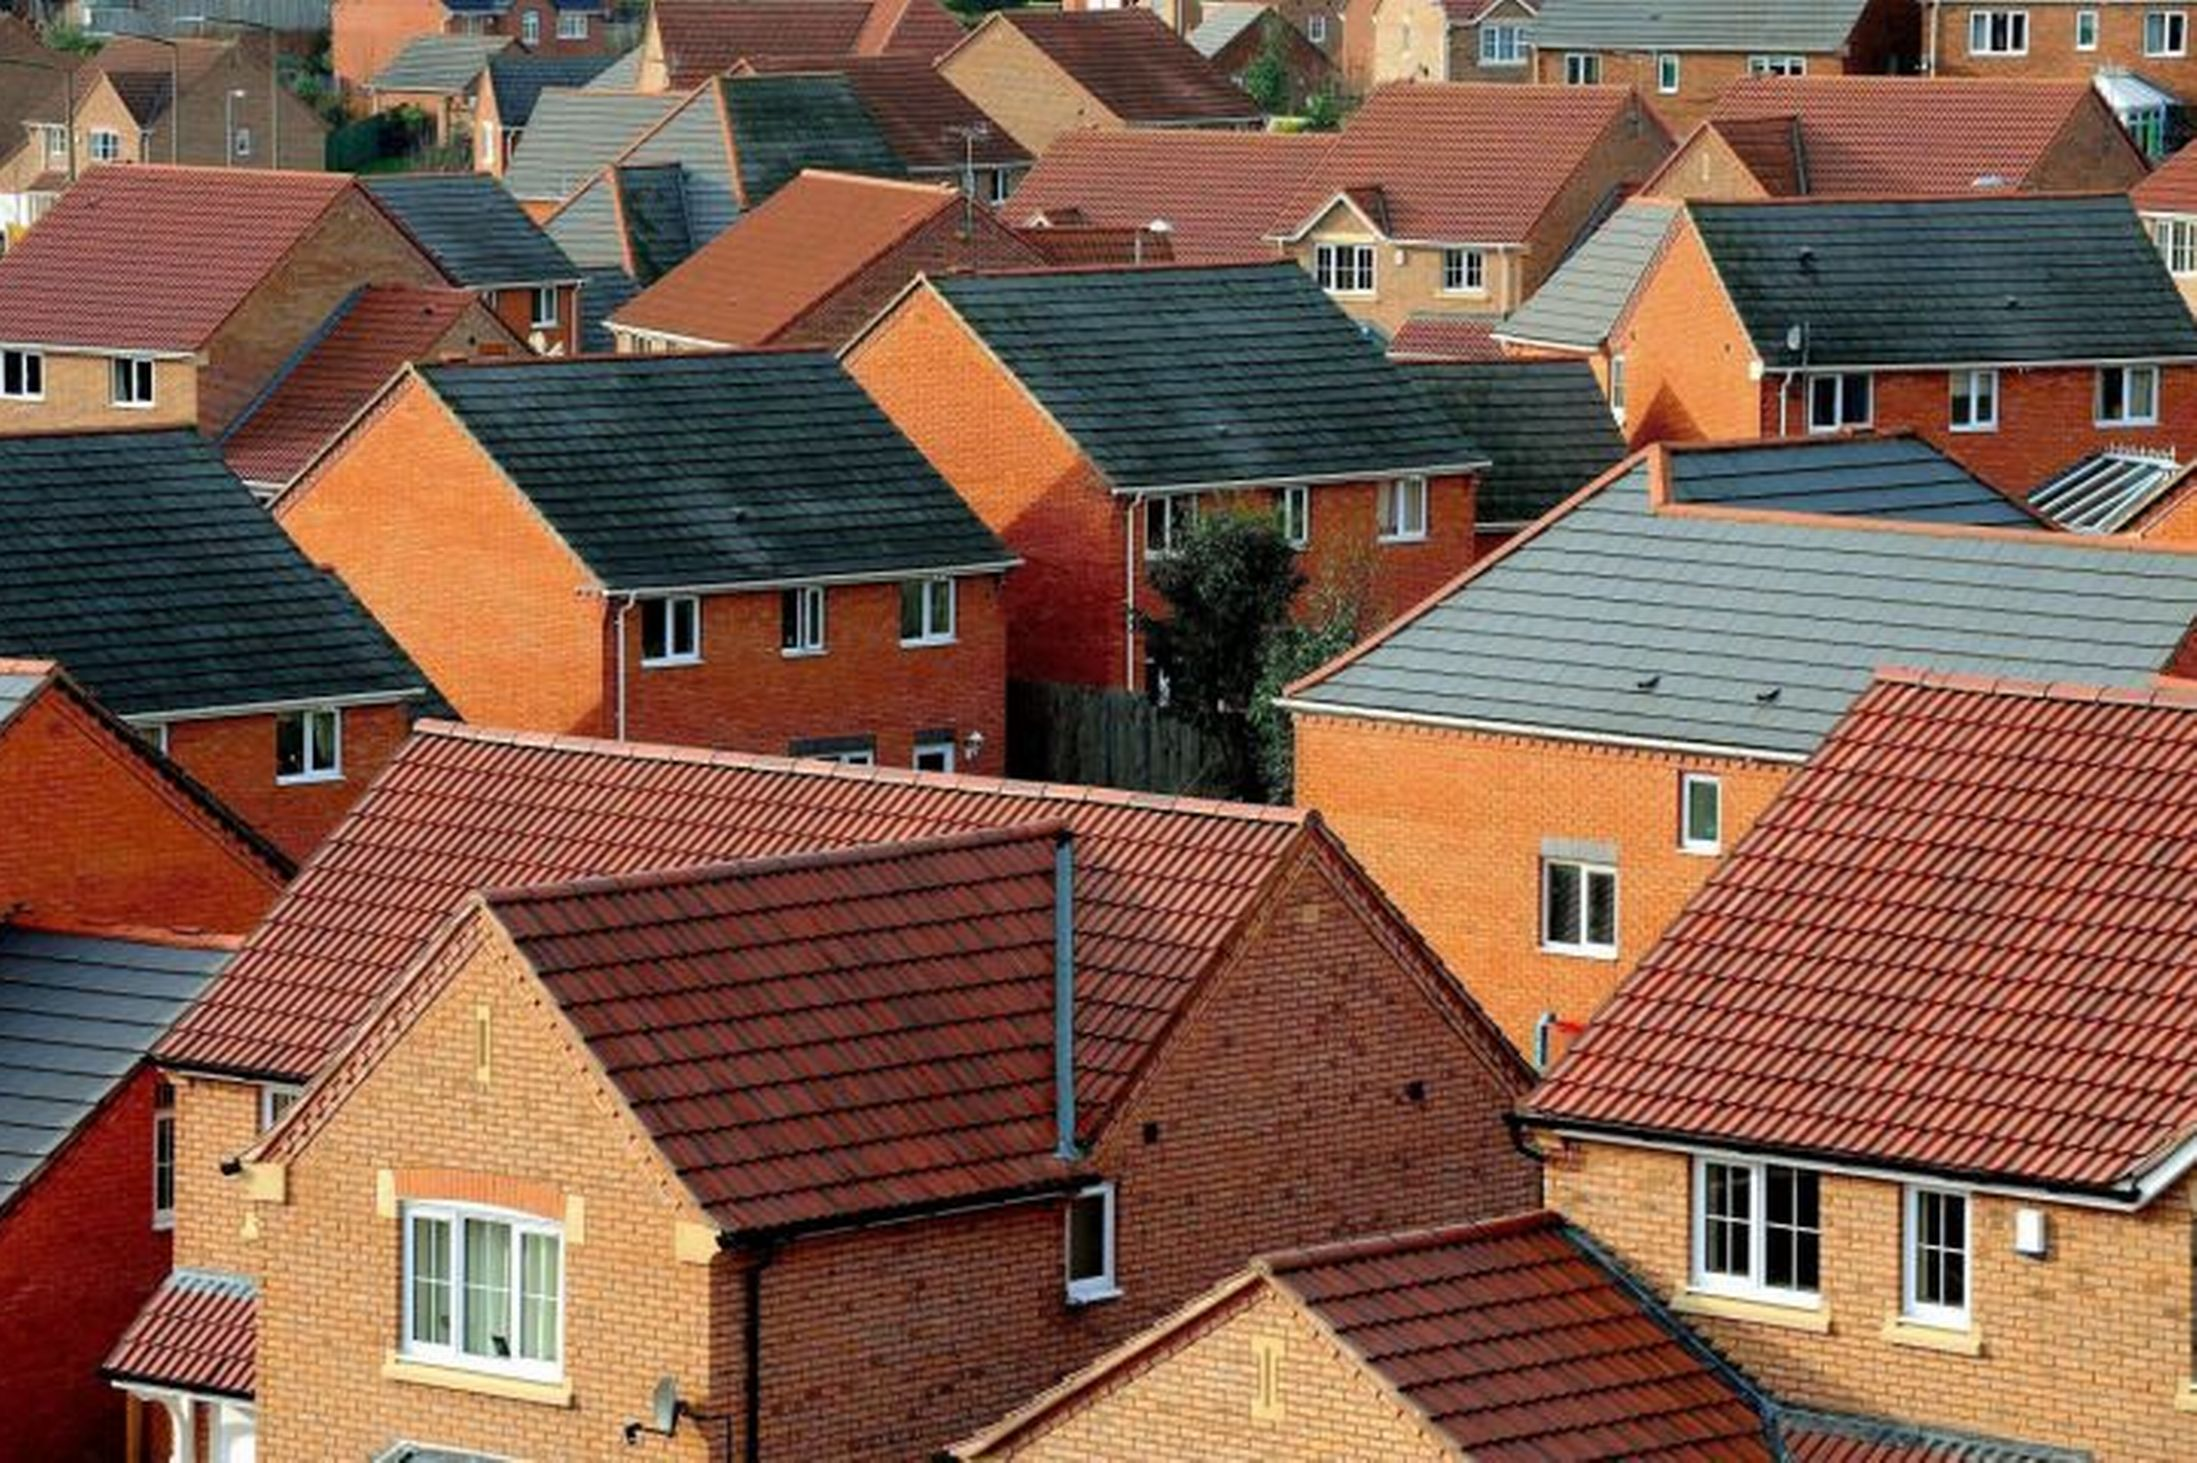 Majority expect housing prices to rise in the UK